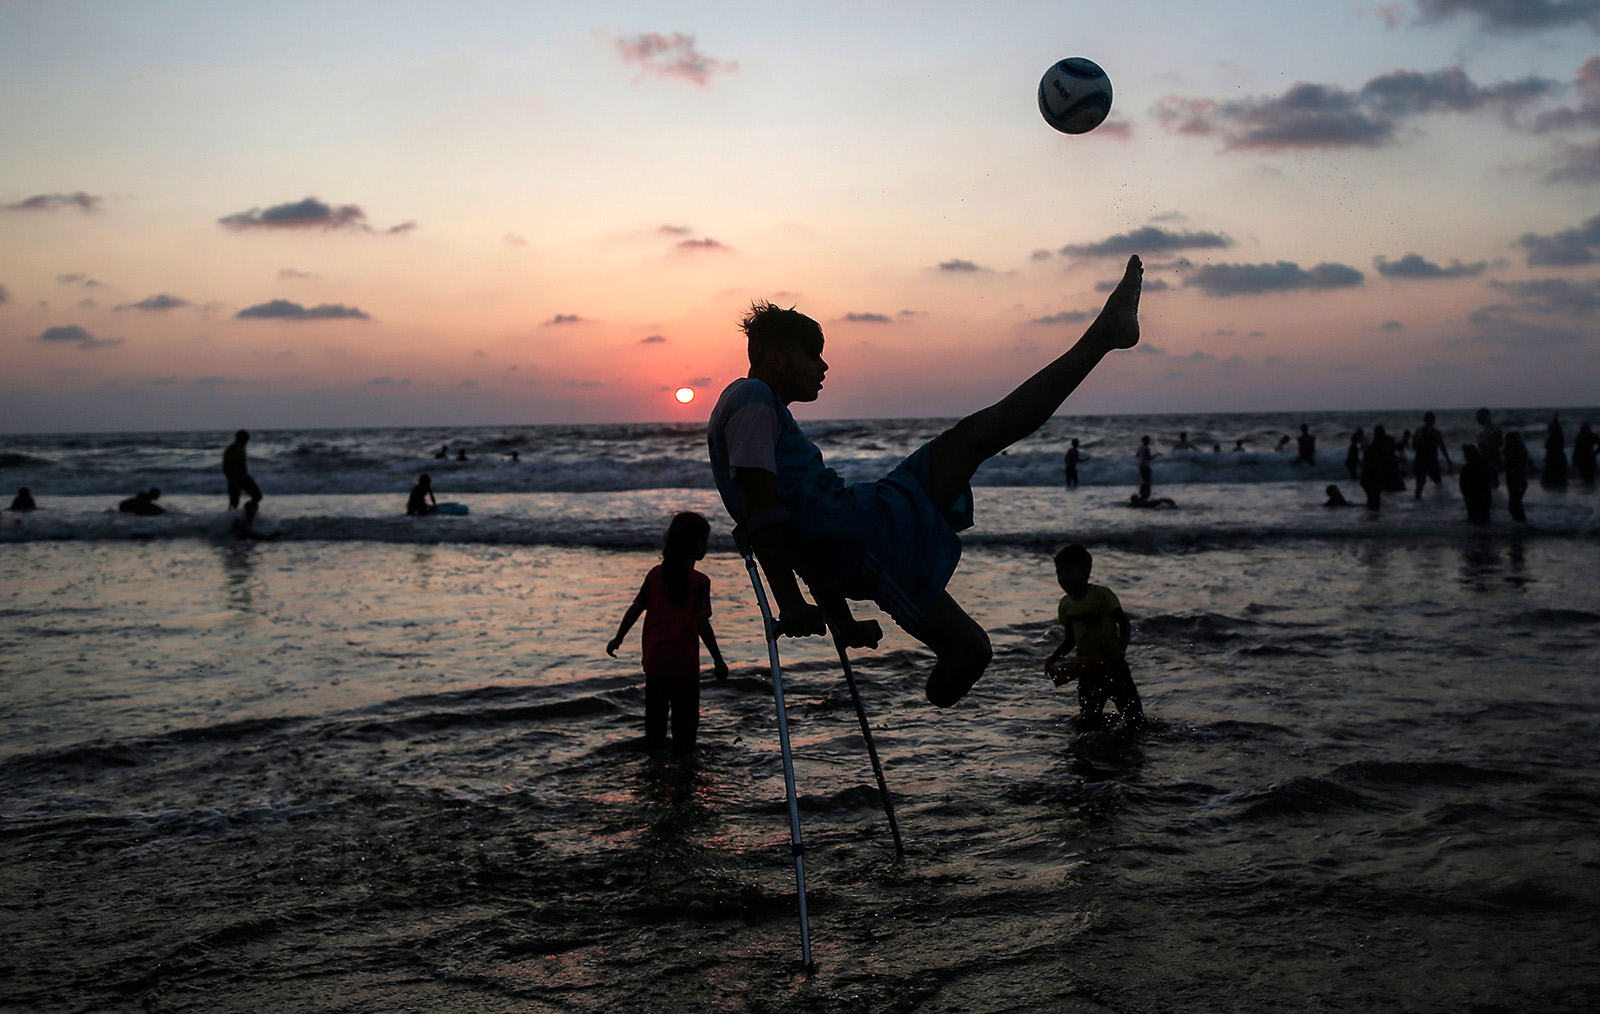 Palestinian Mohammed Eliwa, 17, who lost his leg during clashes on the border with Israel, plays football on the beach in Gaza City on Aug. 20. MAHMUD HAMS/AFP/Getty Images